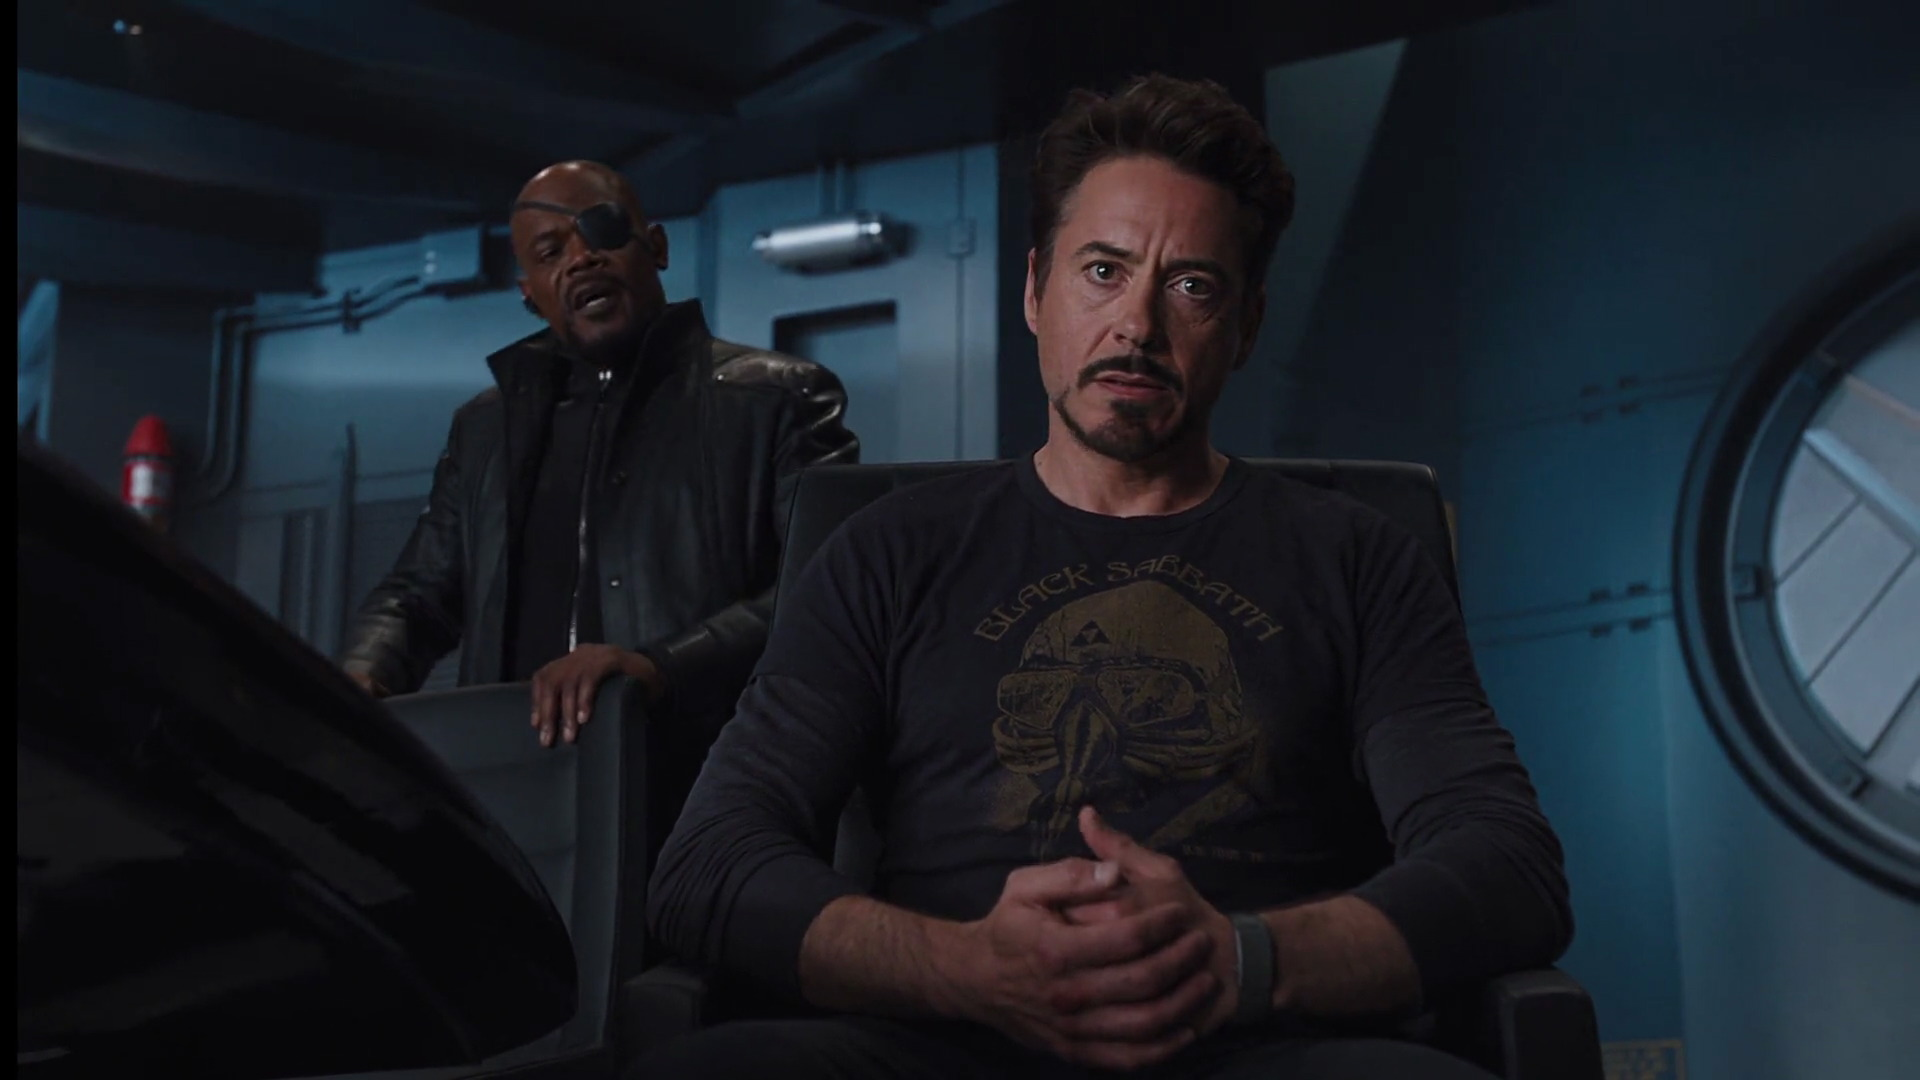 http://www.caps.media/201/2-avengers/full/avengers-movie-screencaps.com-10765.jpg